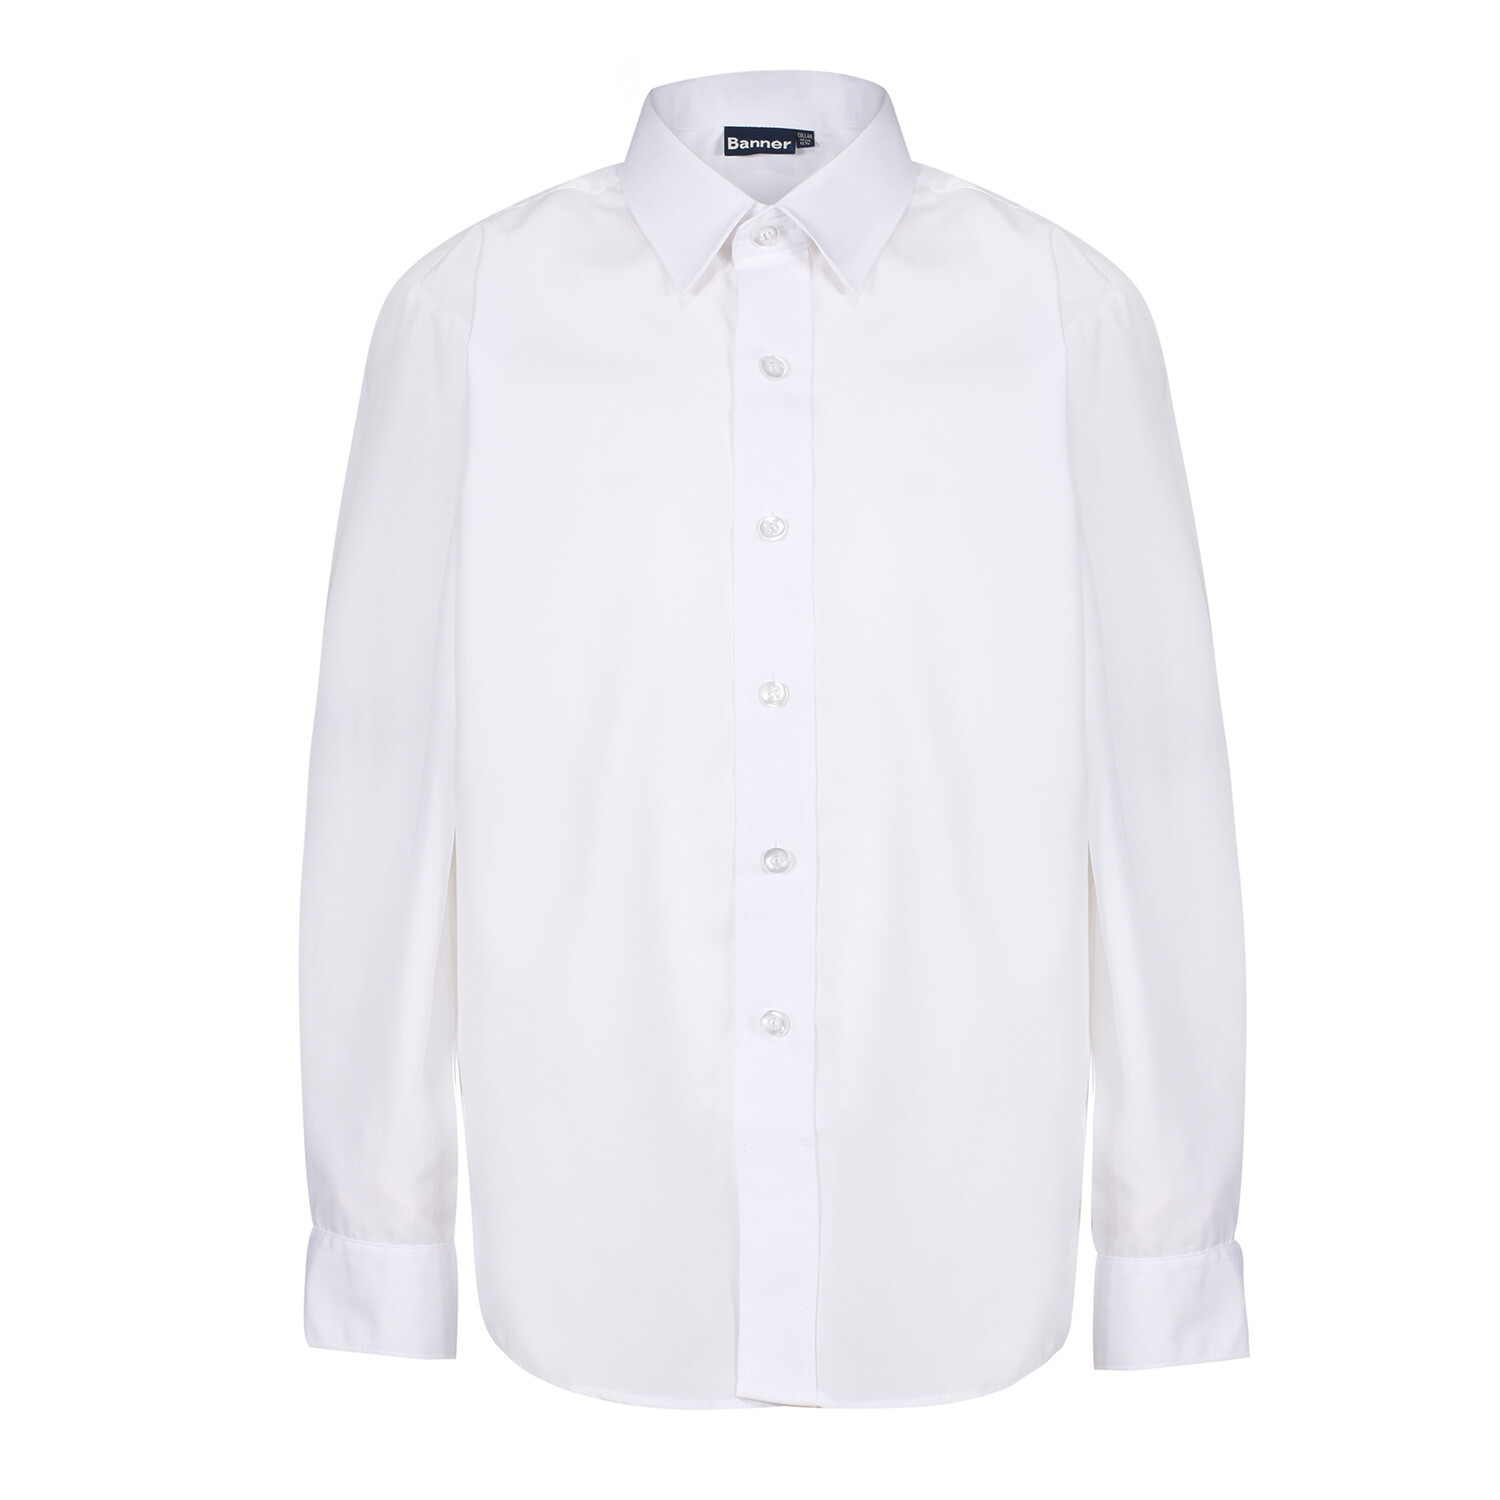 Long Sleeve Shirt in White for Boys by Banner